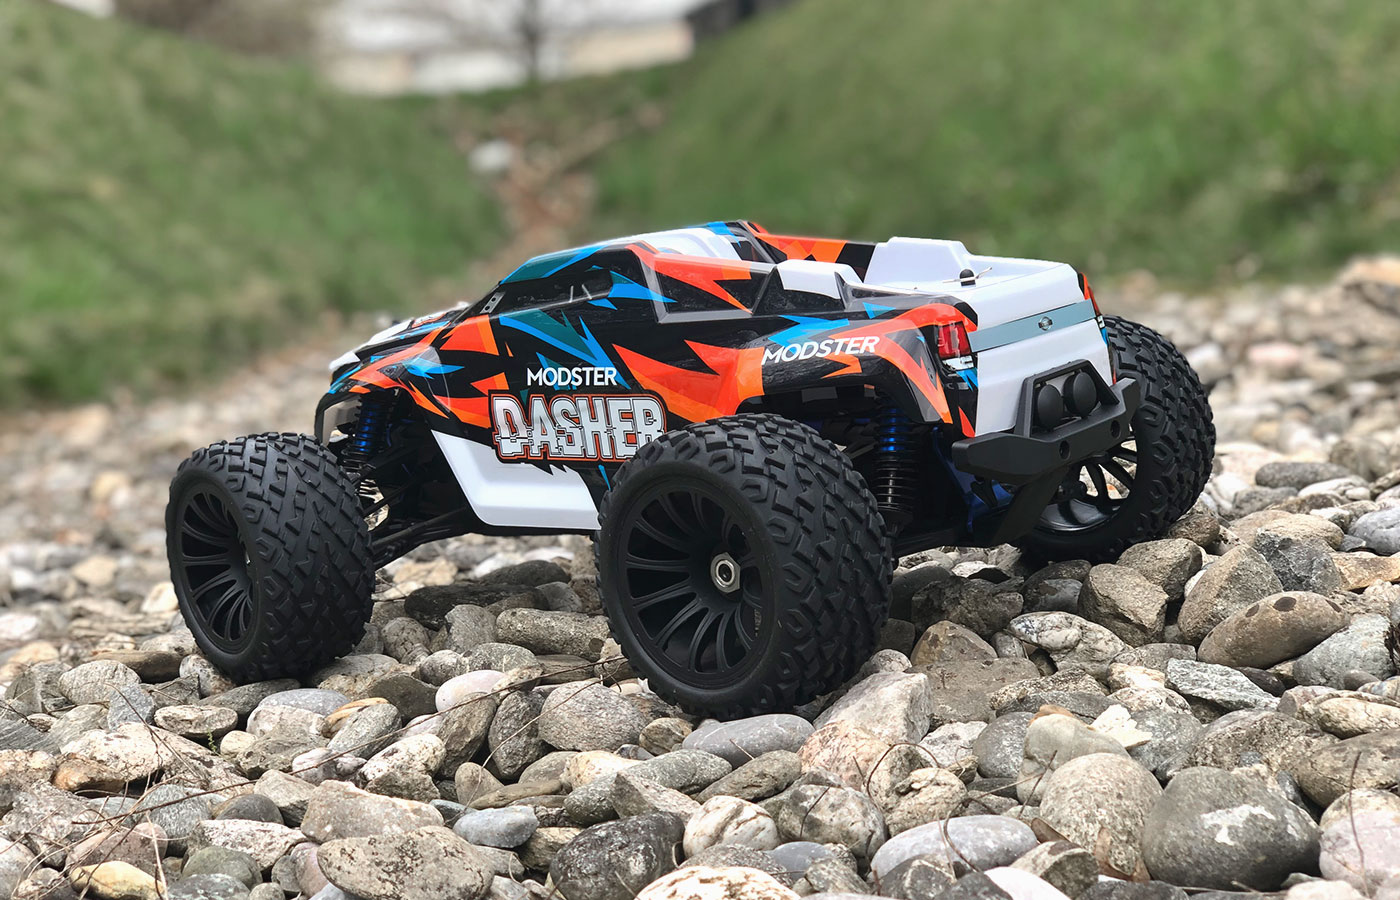 Modster Dasher V2